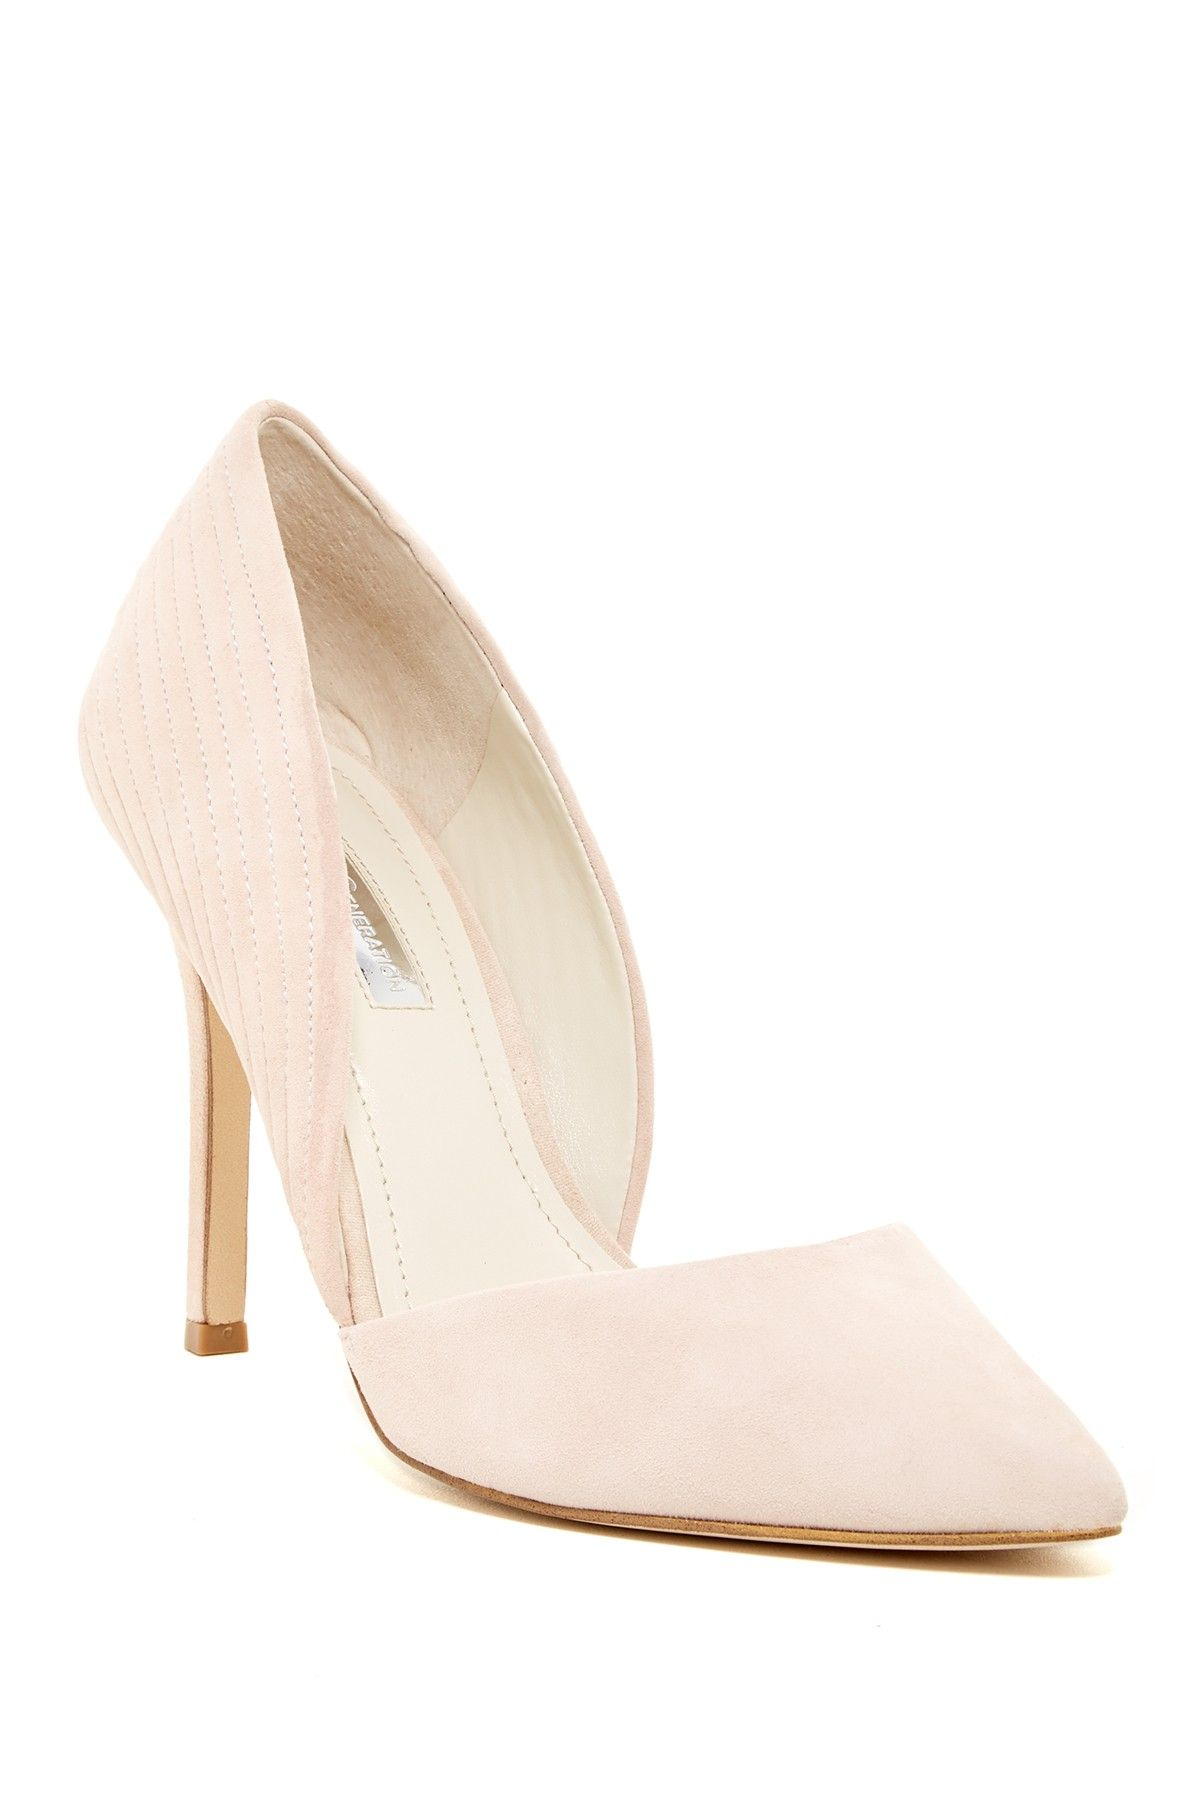 baac02c4778 BCBGeneration - Tanlee d Orsay Pump at Nordstrom Rack. Free Shipping on  orders over  100.